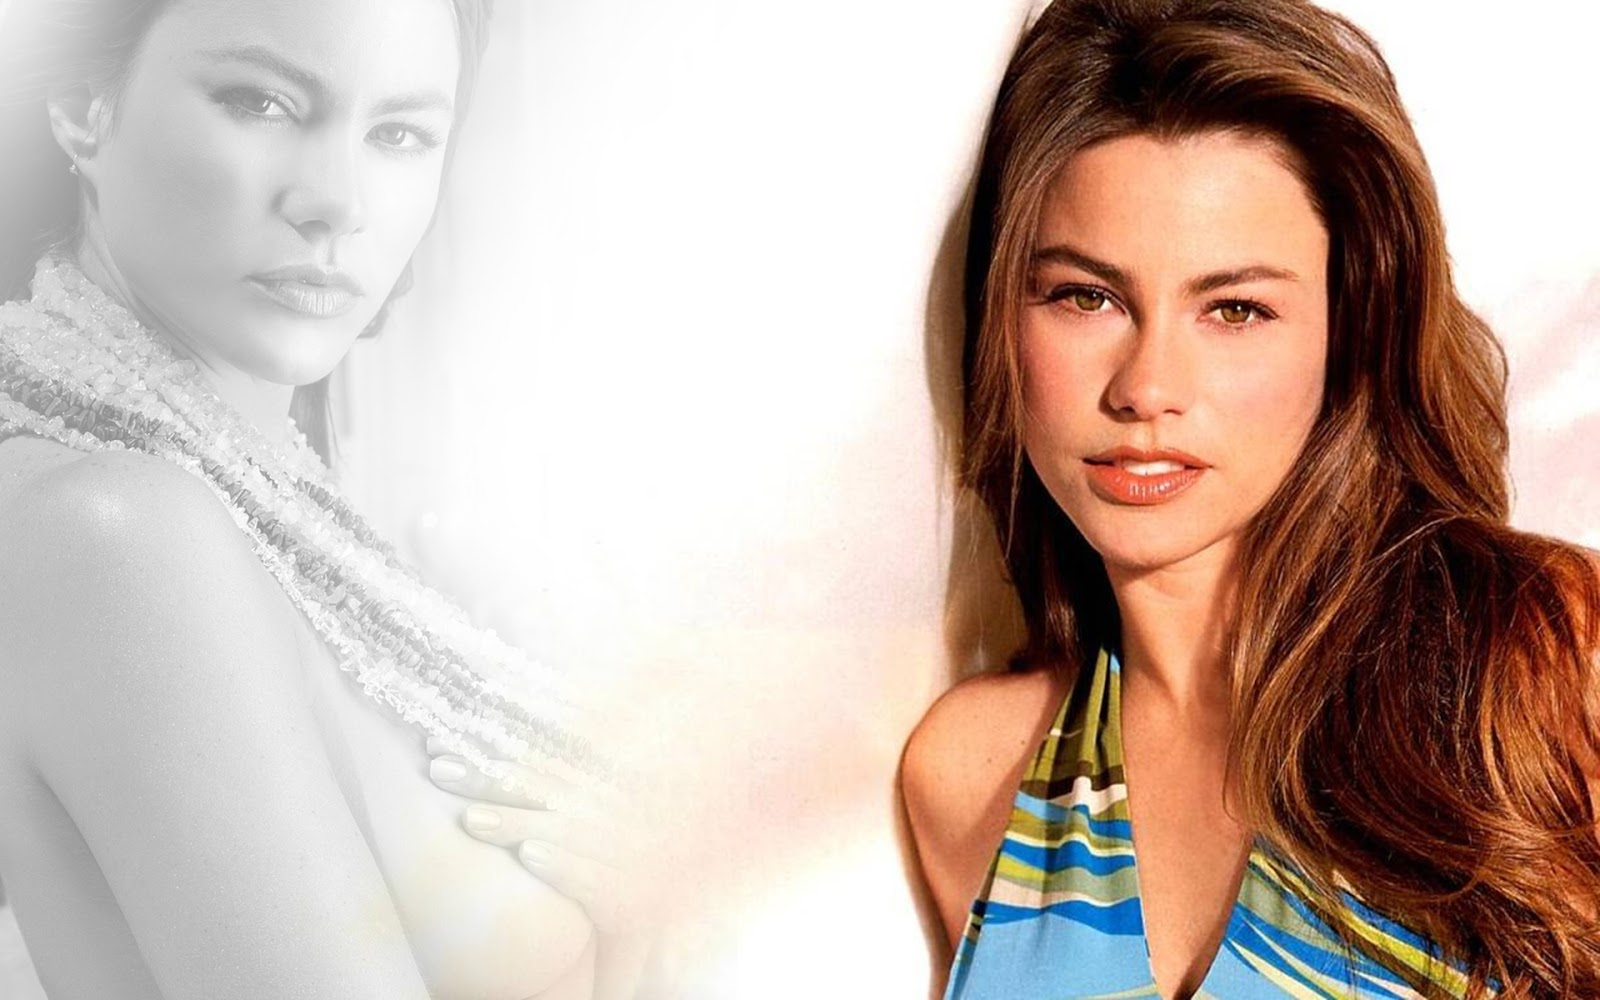 Sofia vergara wallpaper download hd and make this wallpaper for your 1600x1000